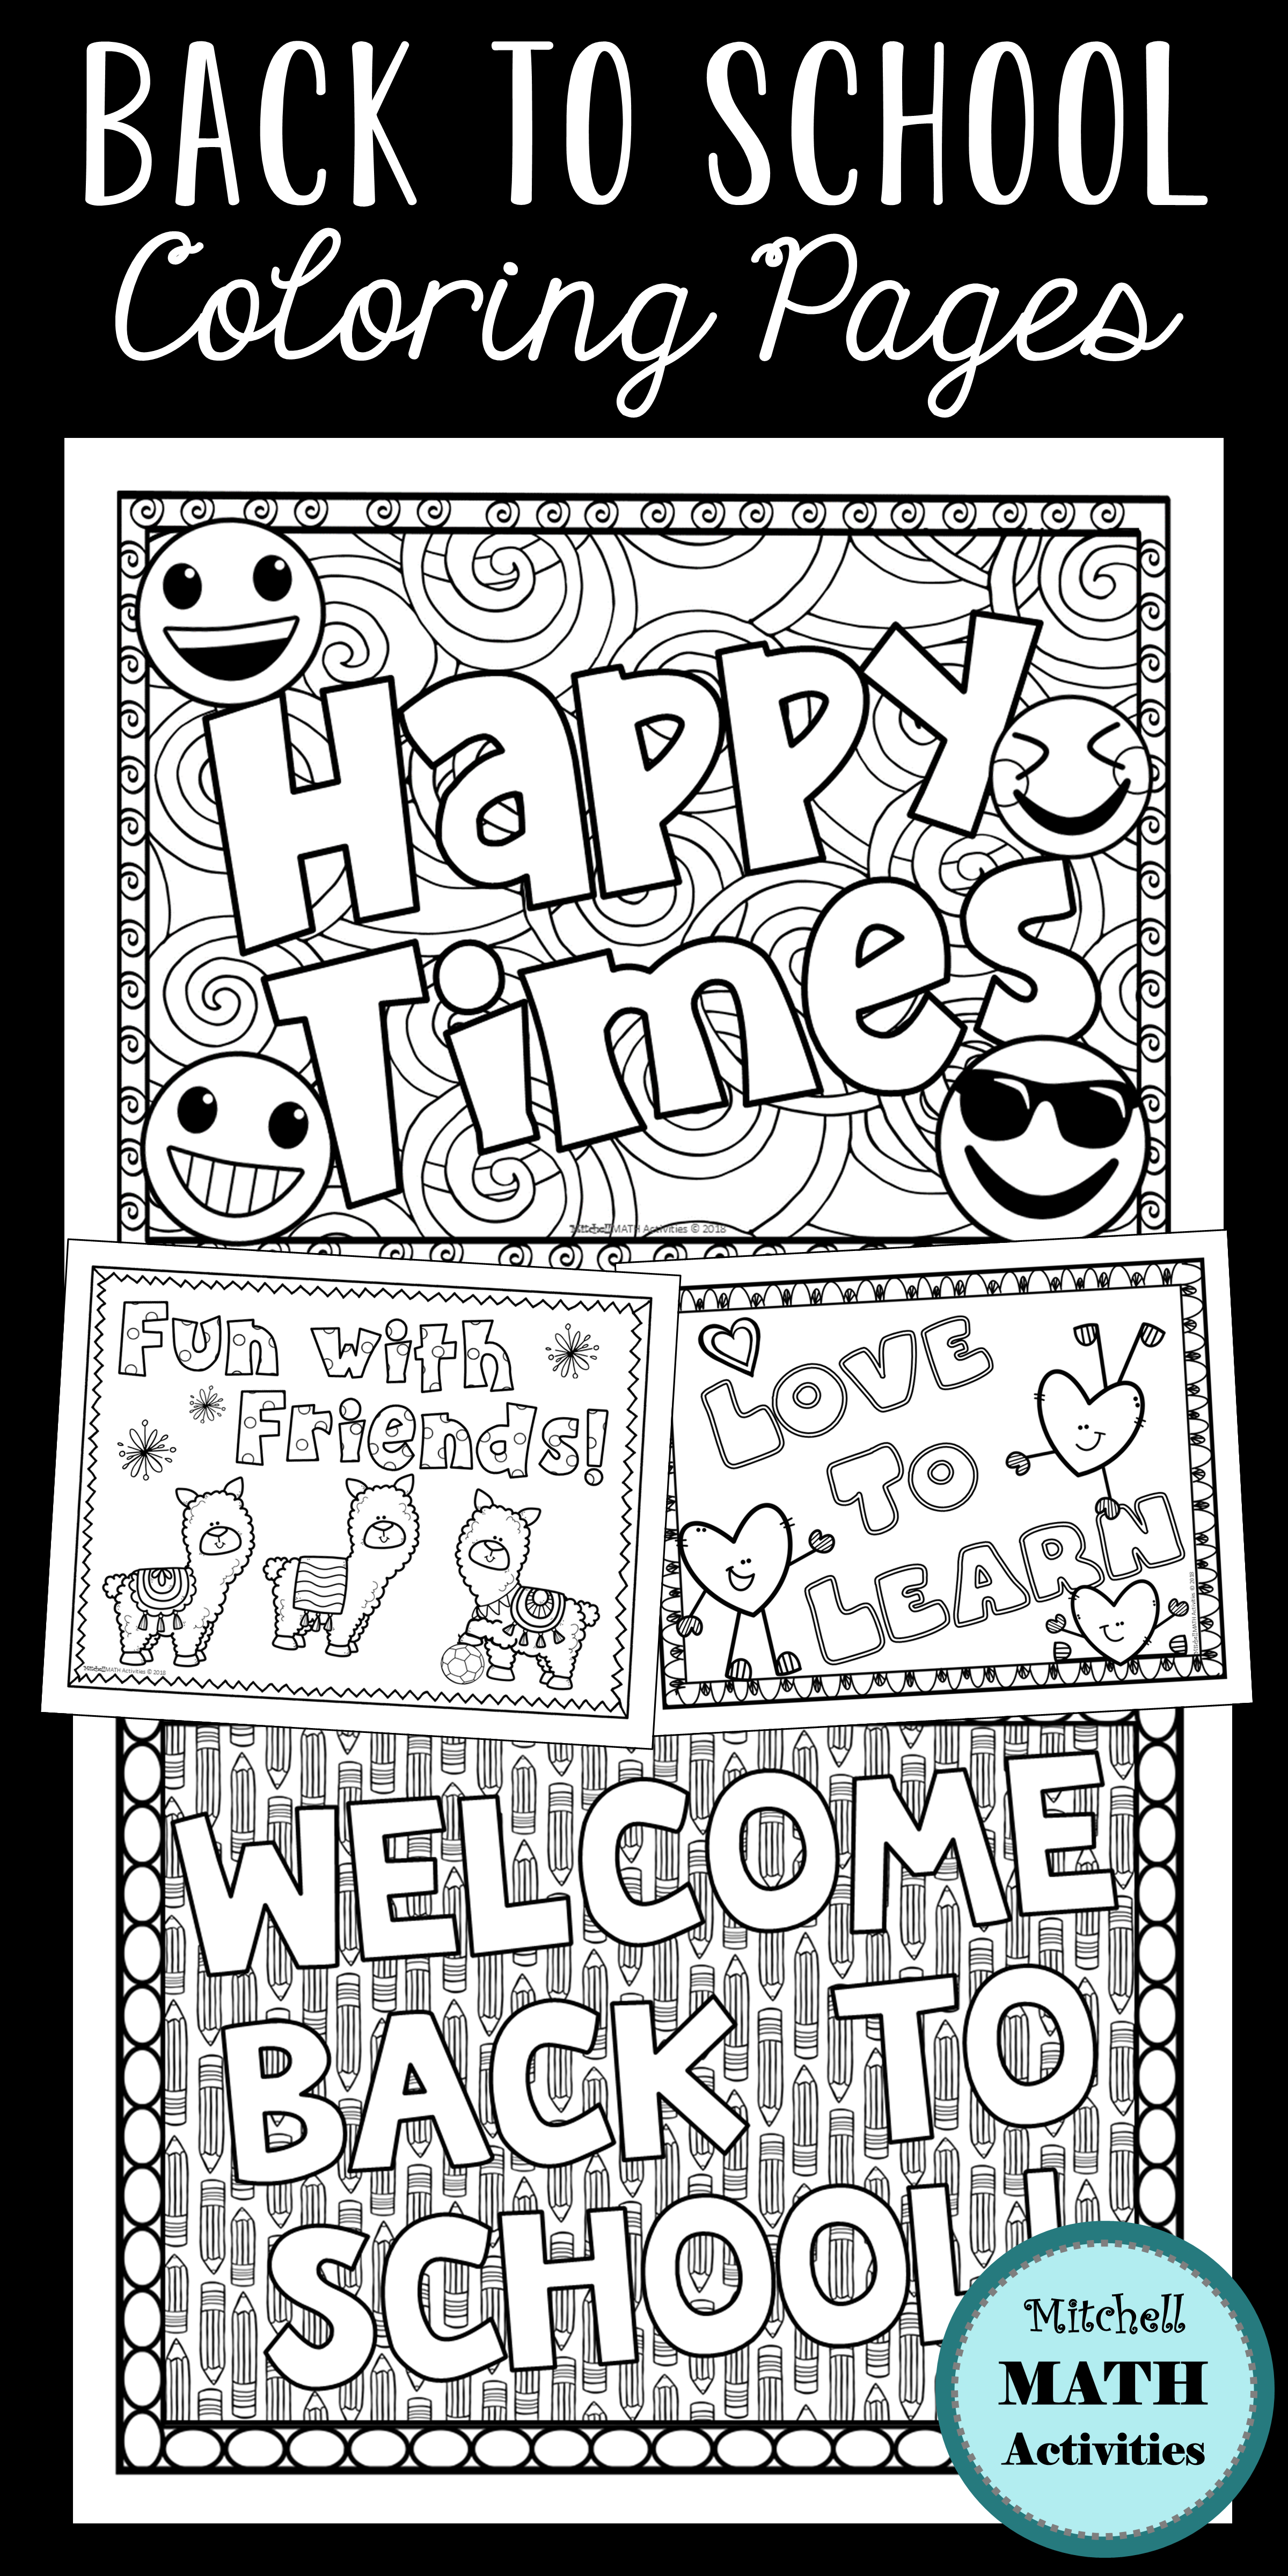 Free Coloring Page Of A School Building, Download Free Clip Art ... | 4800x2400